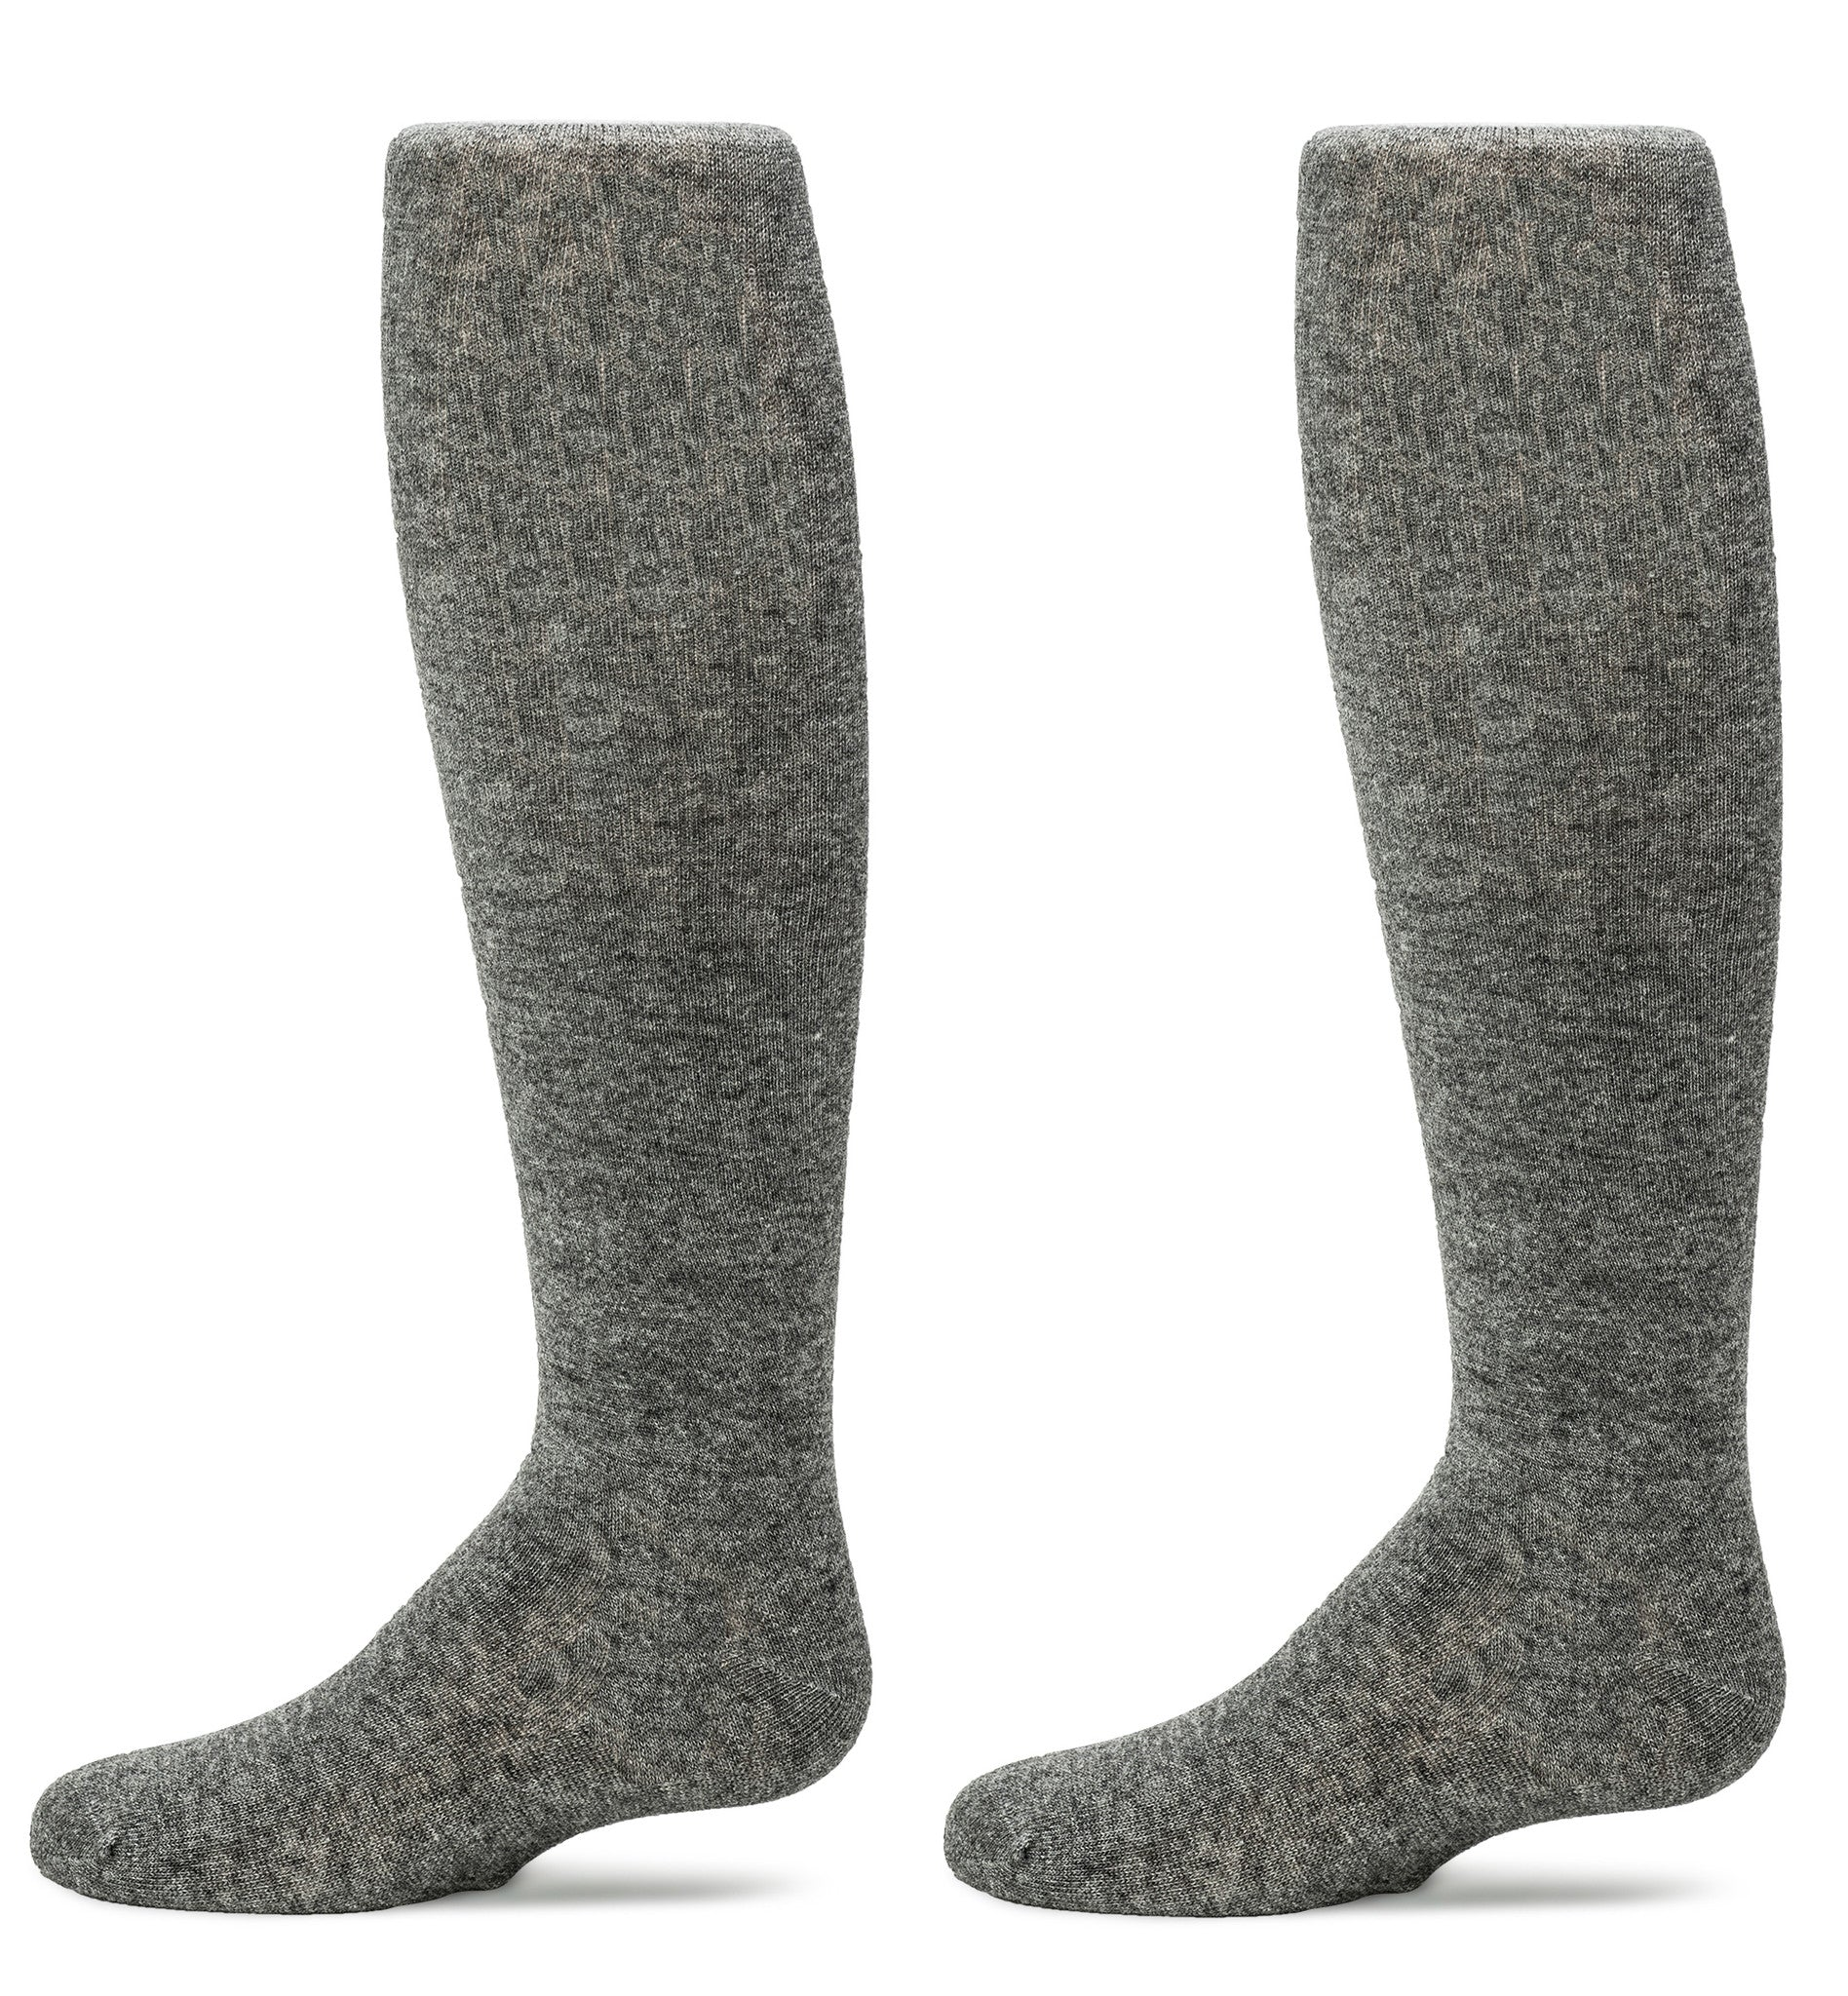 4-Pack Flat Knit with Comfortoe Technology Tights (Heather Grey)